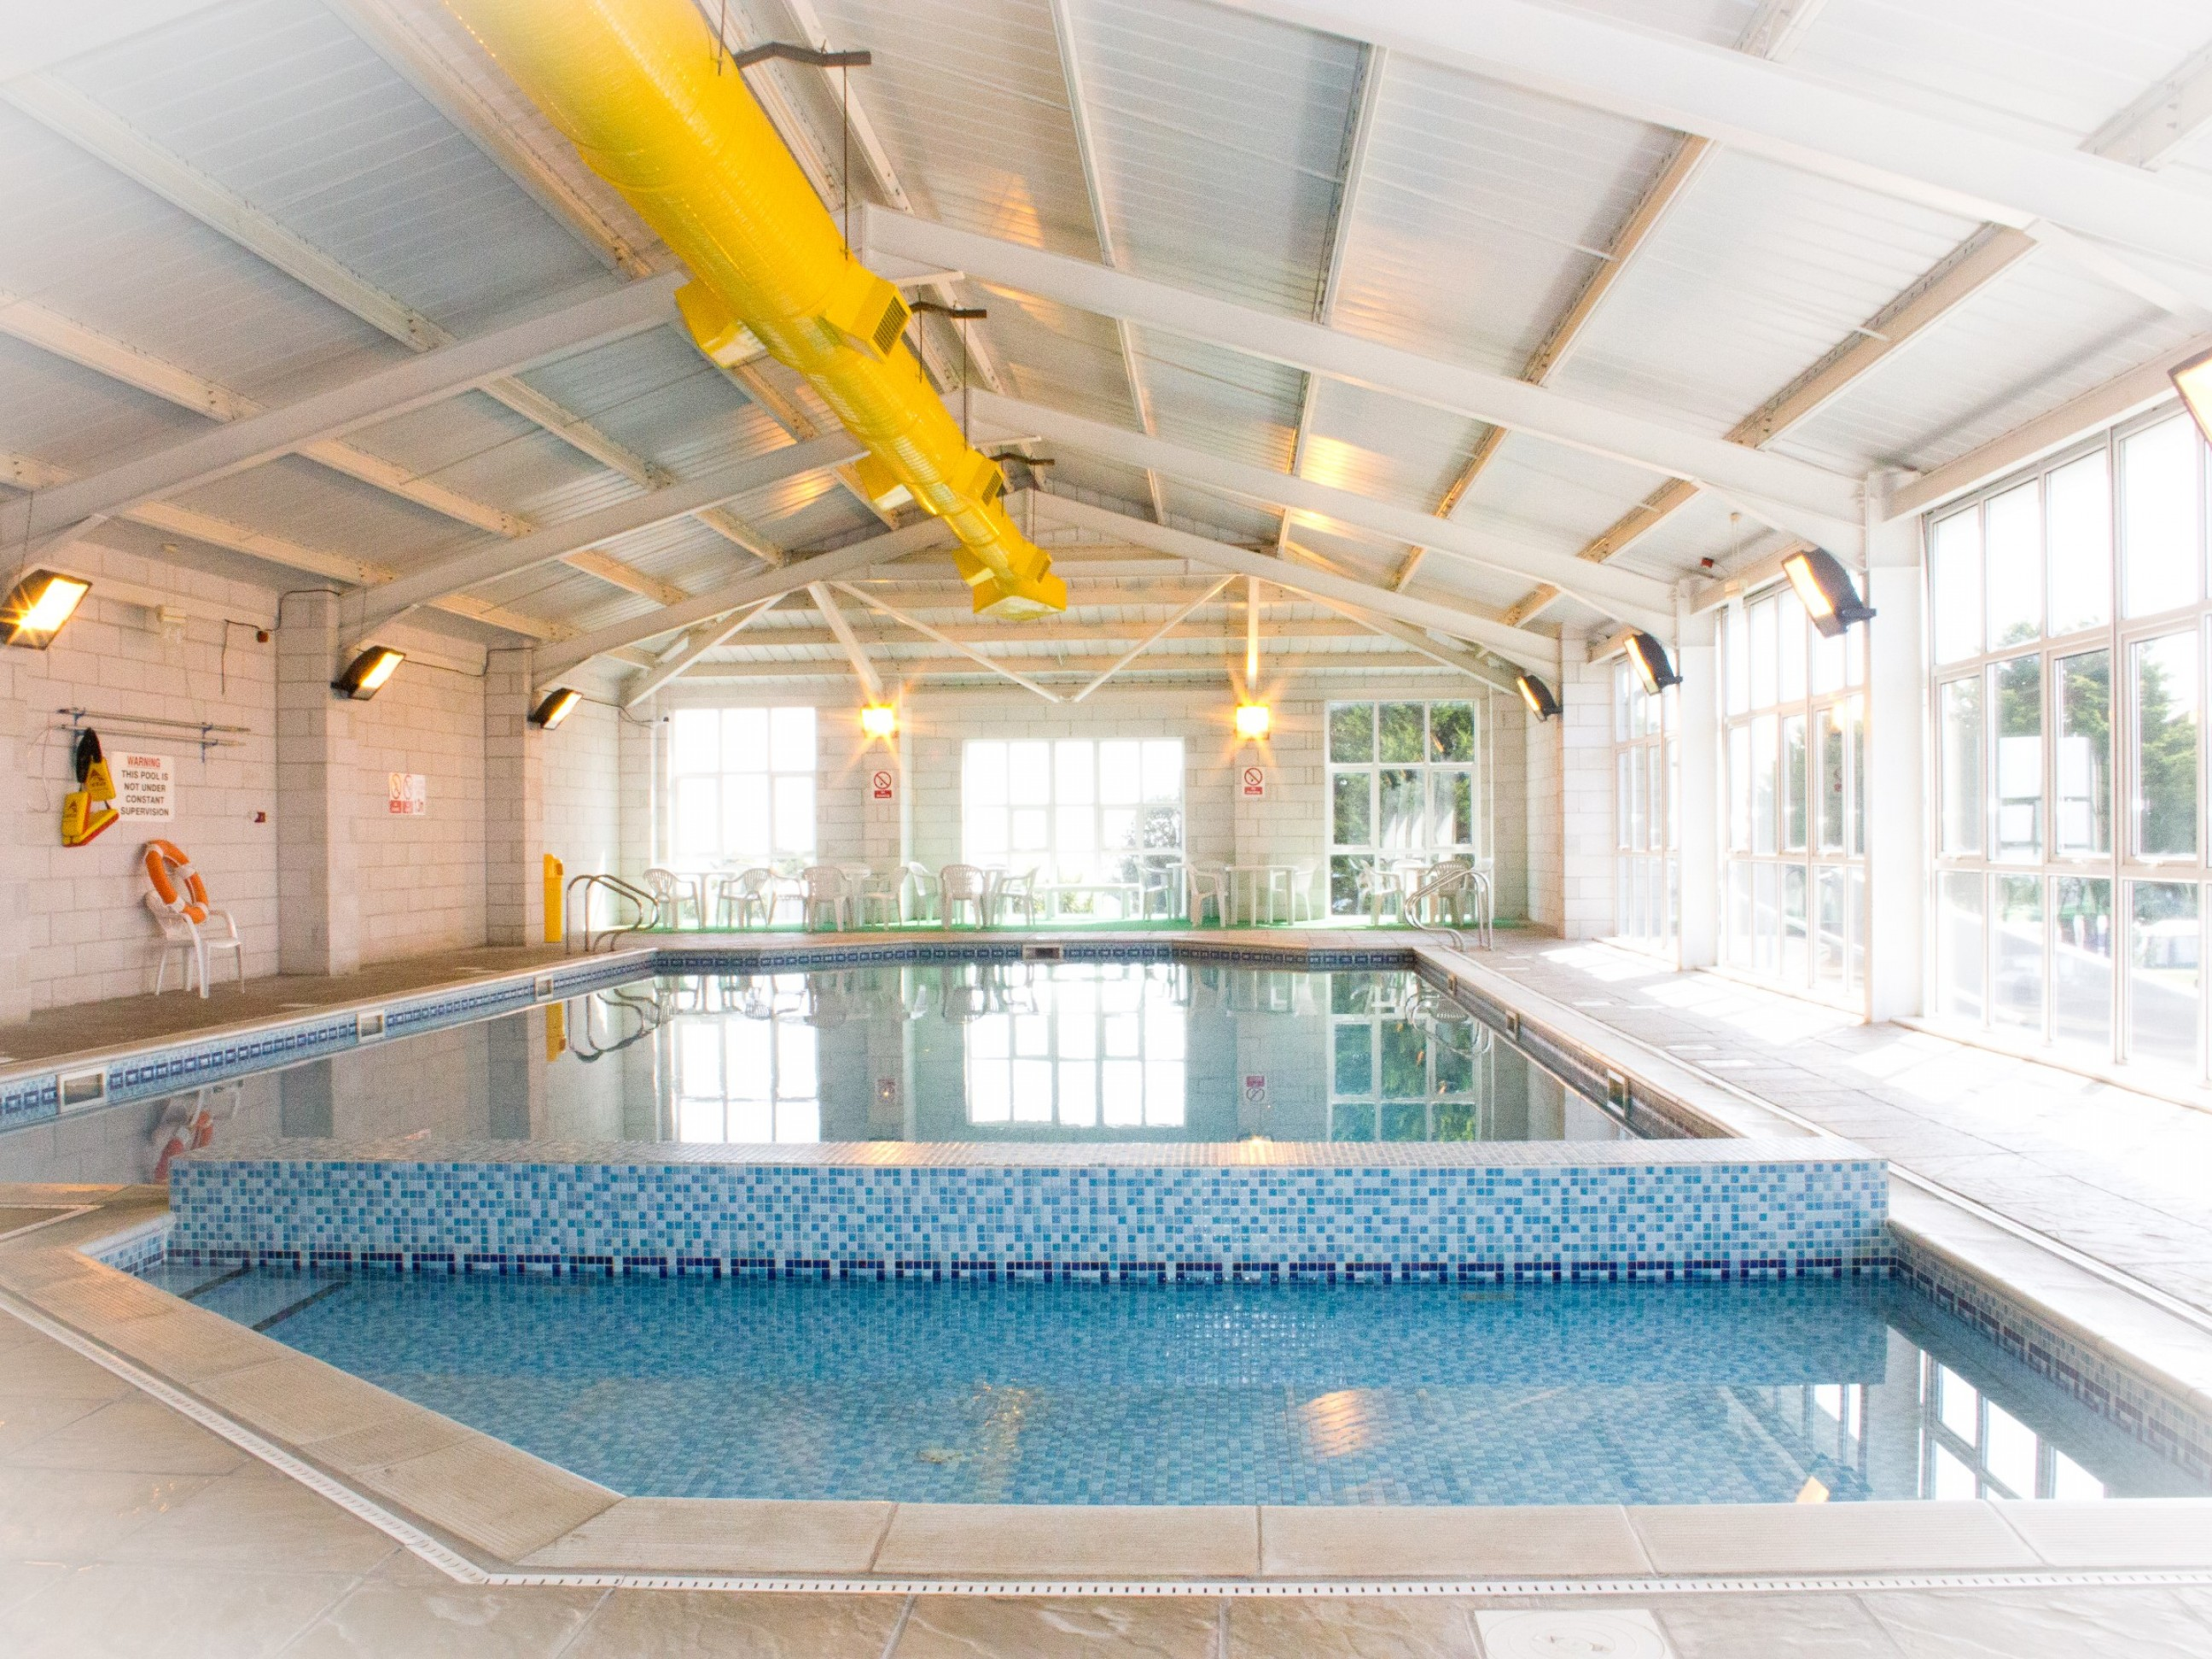 Free use of a local indoor pool